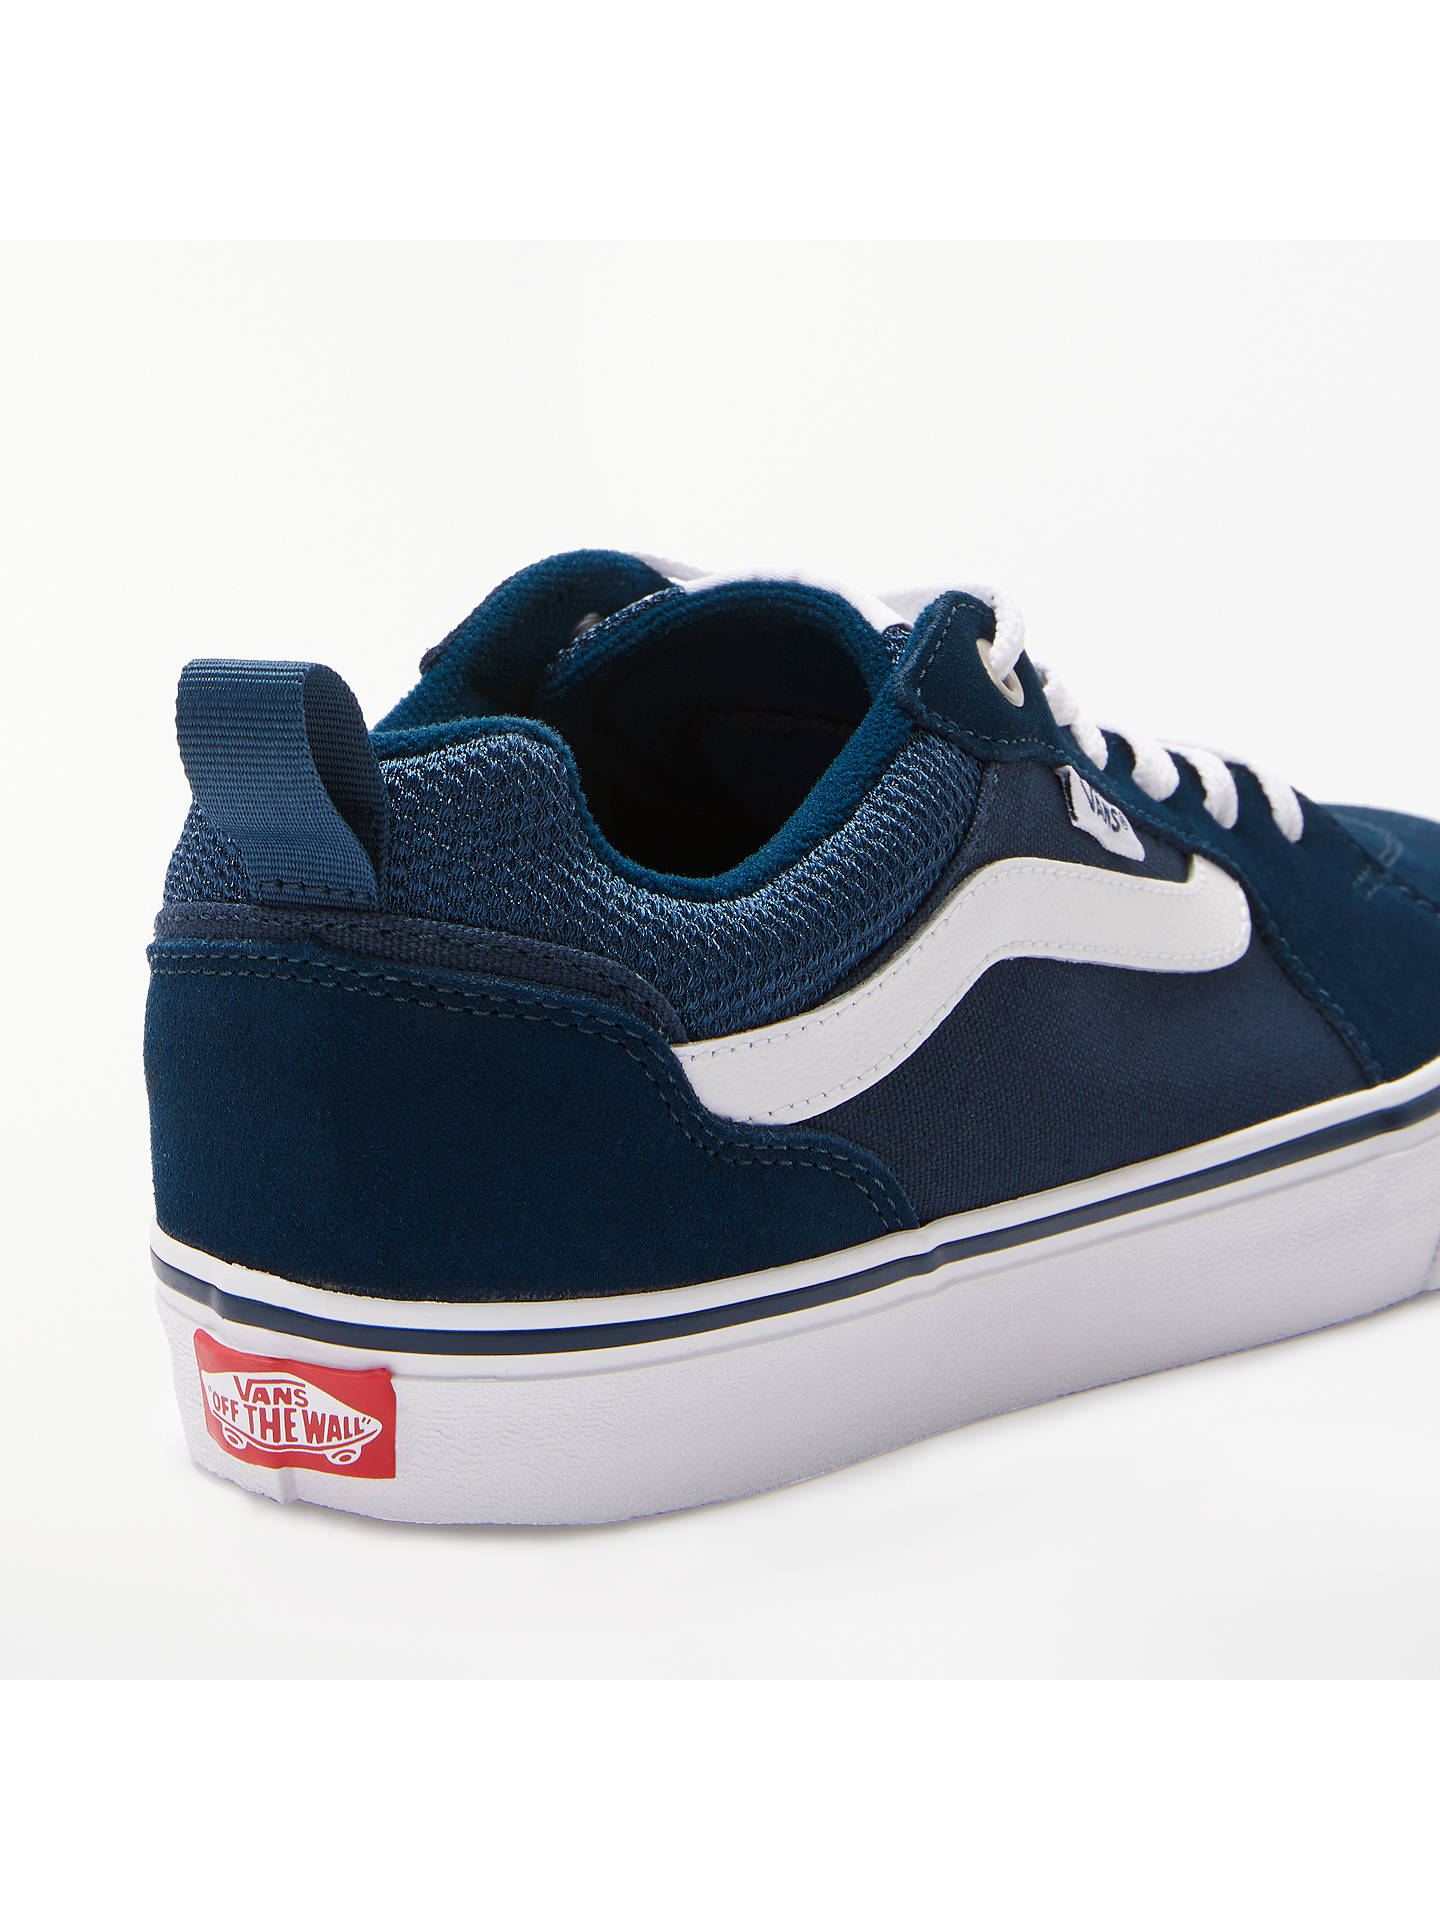 f8c8797923 Vans Filmore Stripe Trainers at John Lewis   Partners